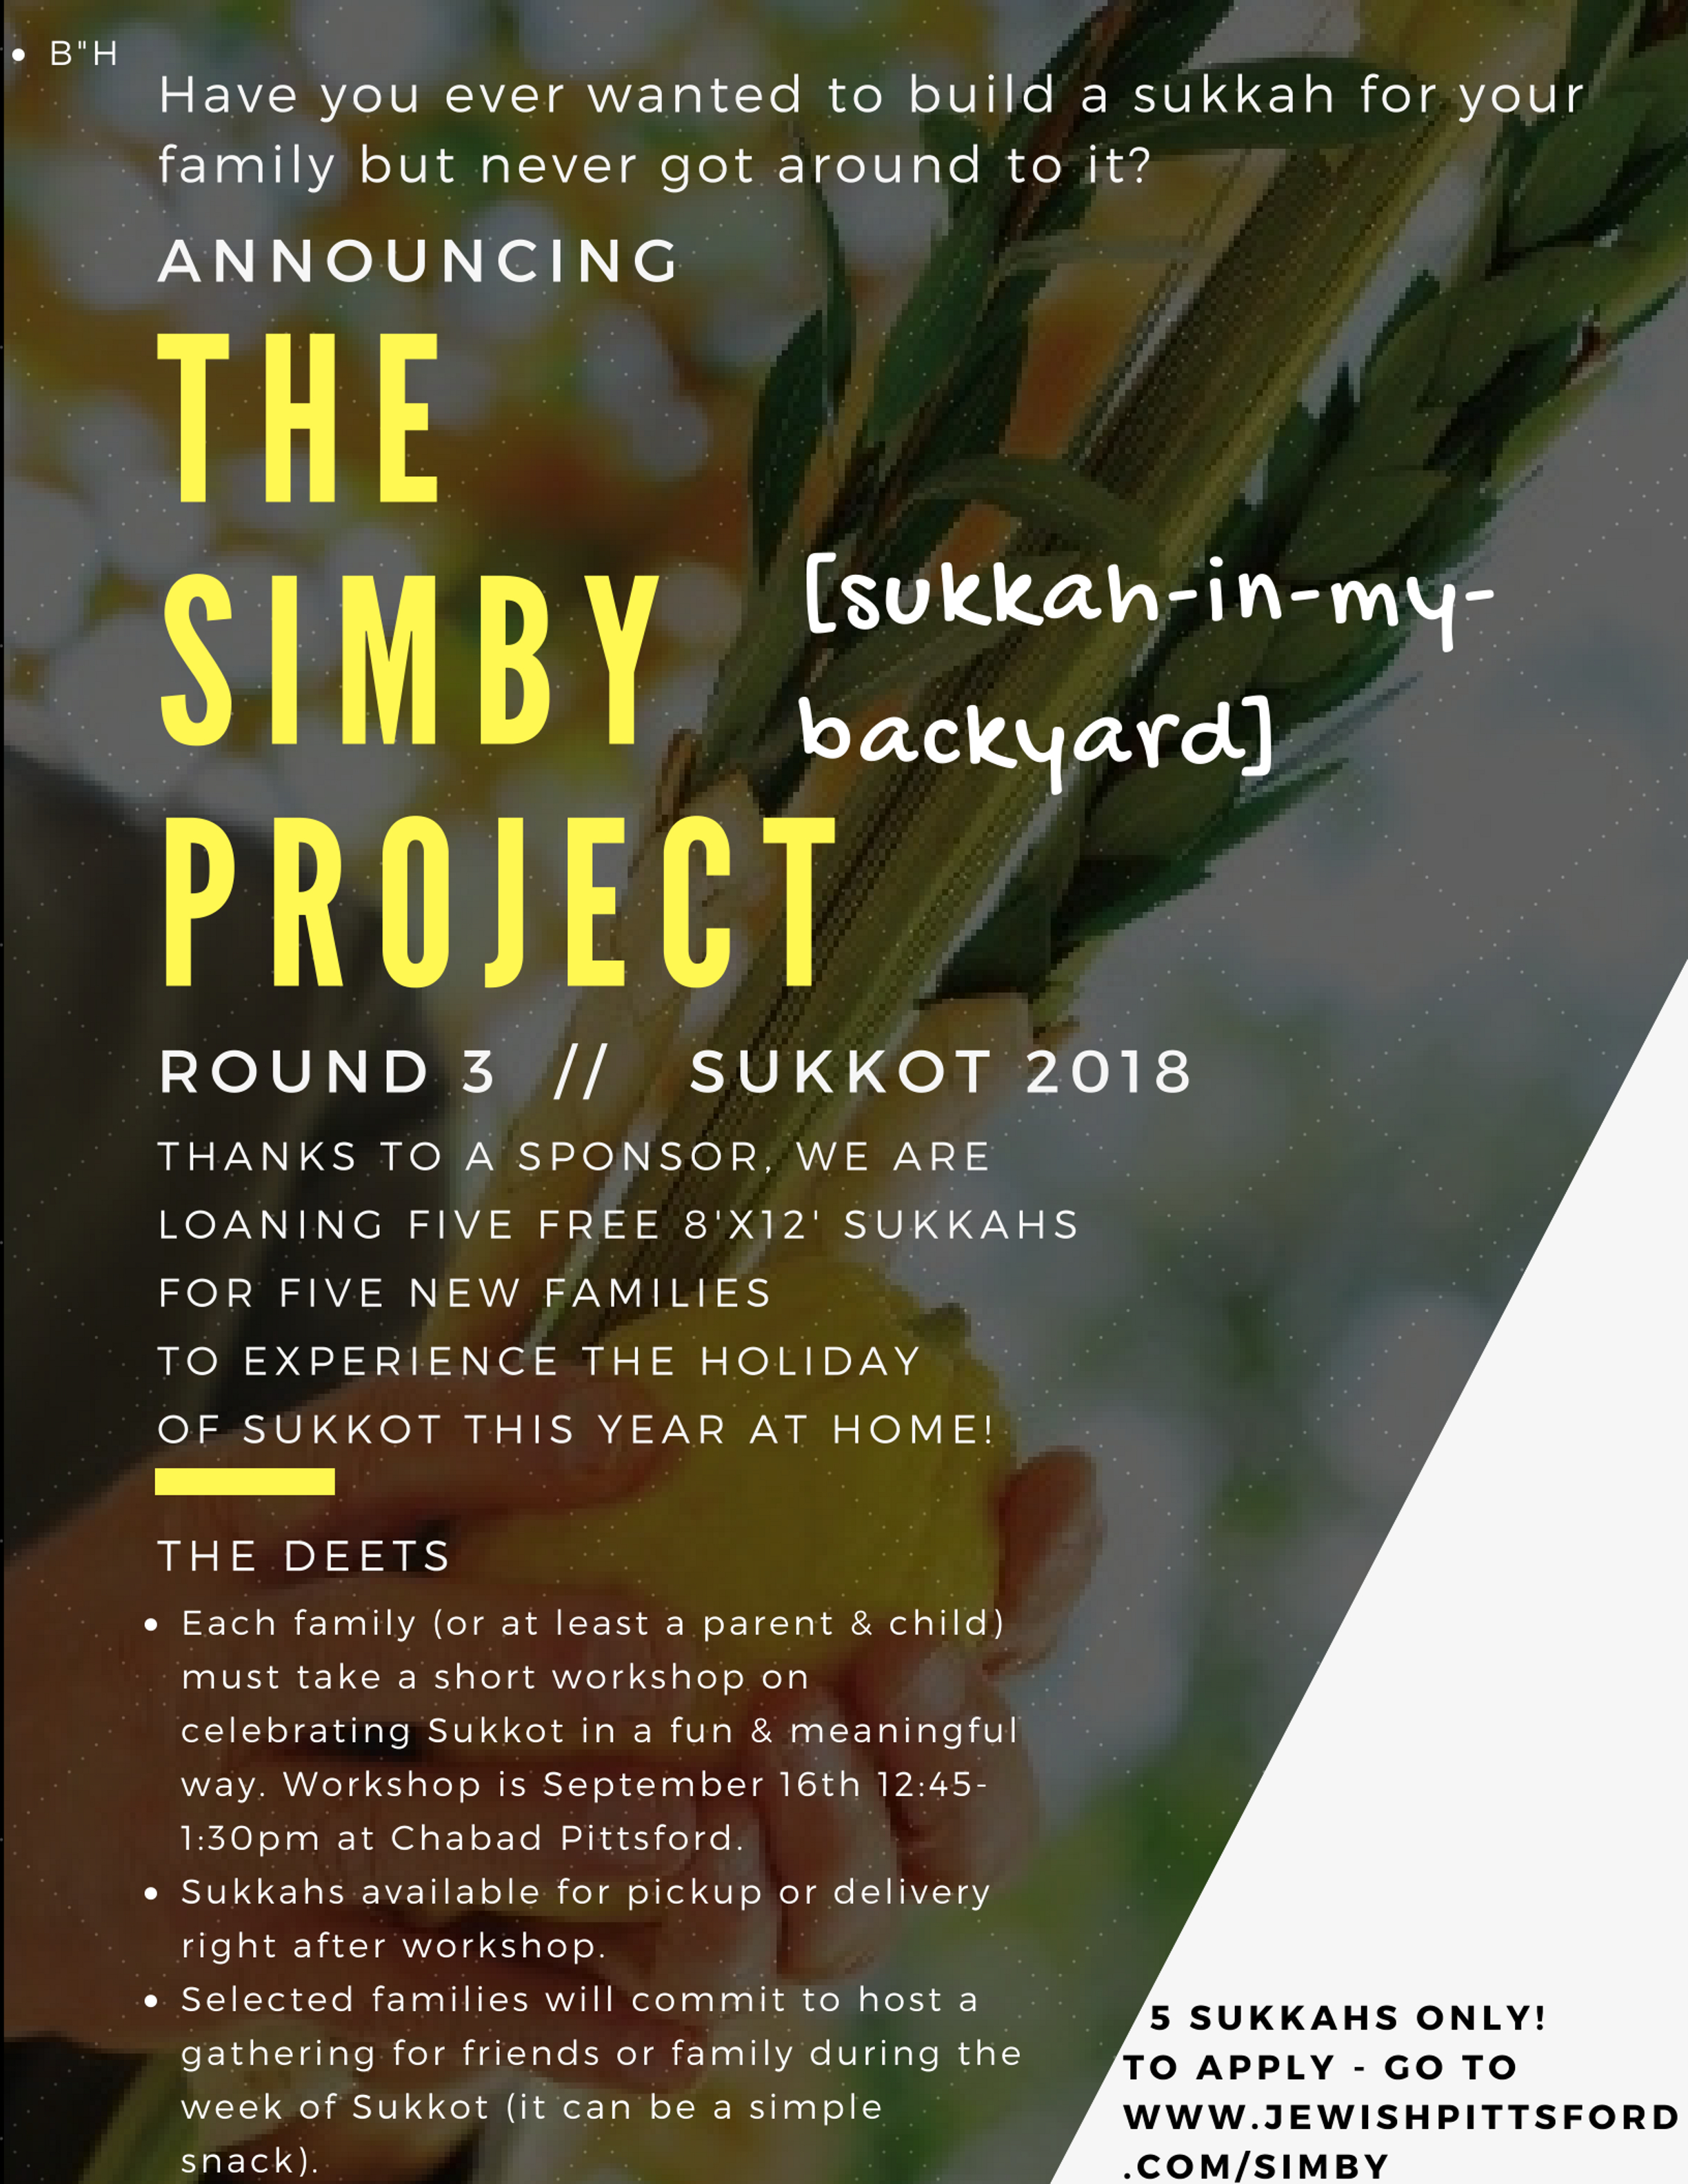 Copy of the sukkahproject.jpg